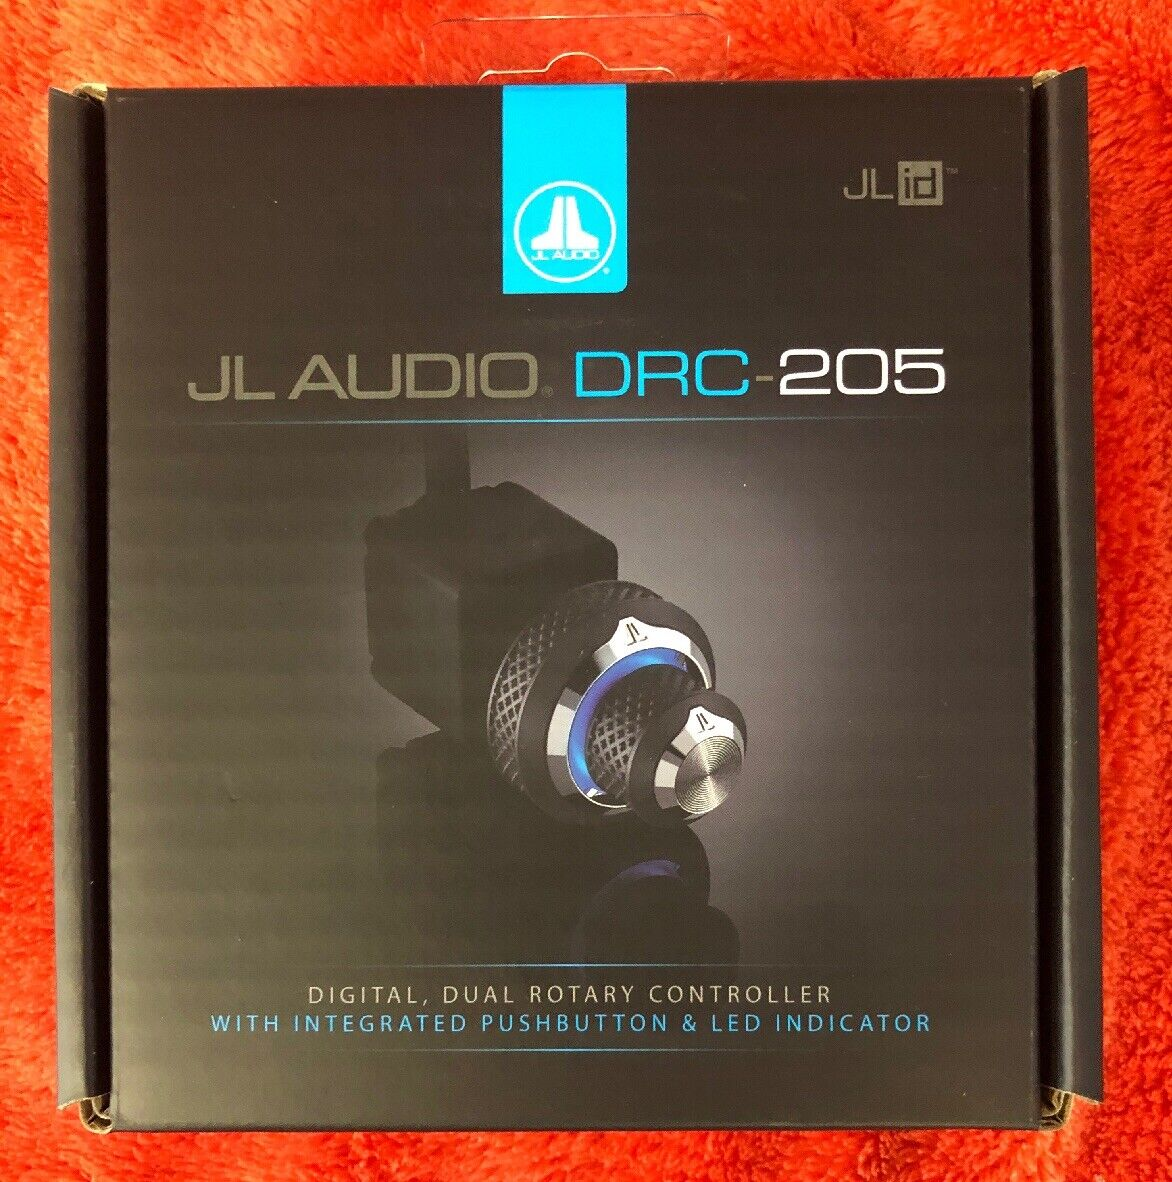 JL Audio DRC-100 Digital Remote Control for JLid Compatible Products